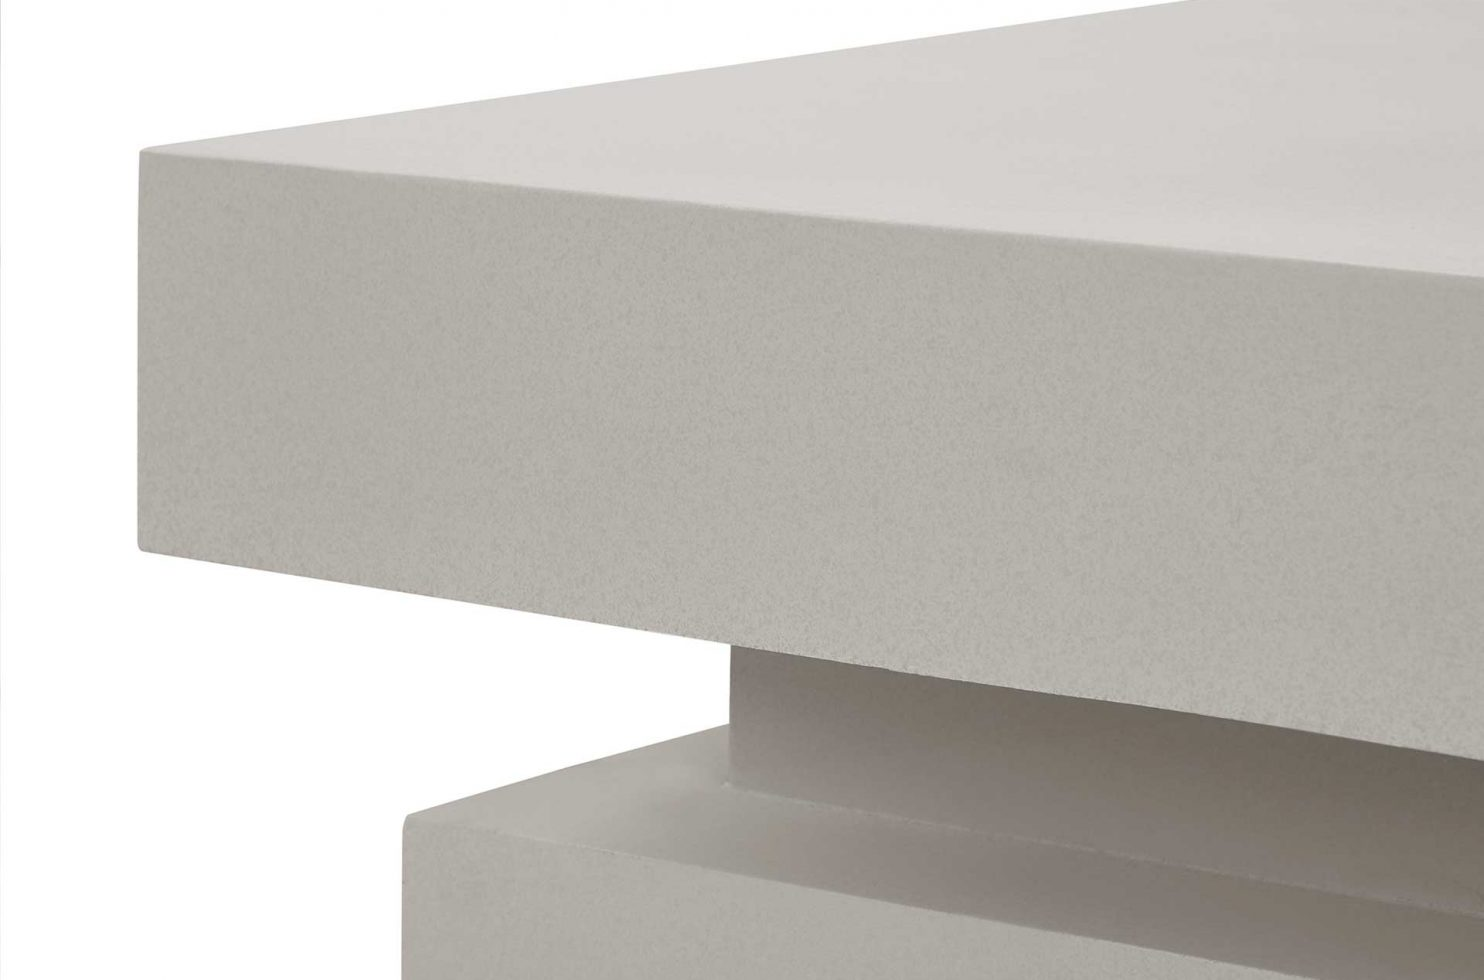 prov frp meditation square coffee table 40in S15661003 dtl1